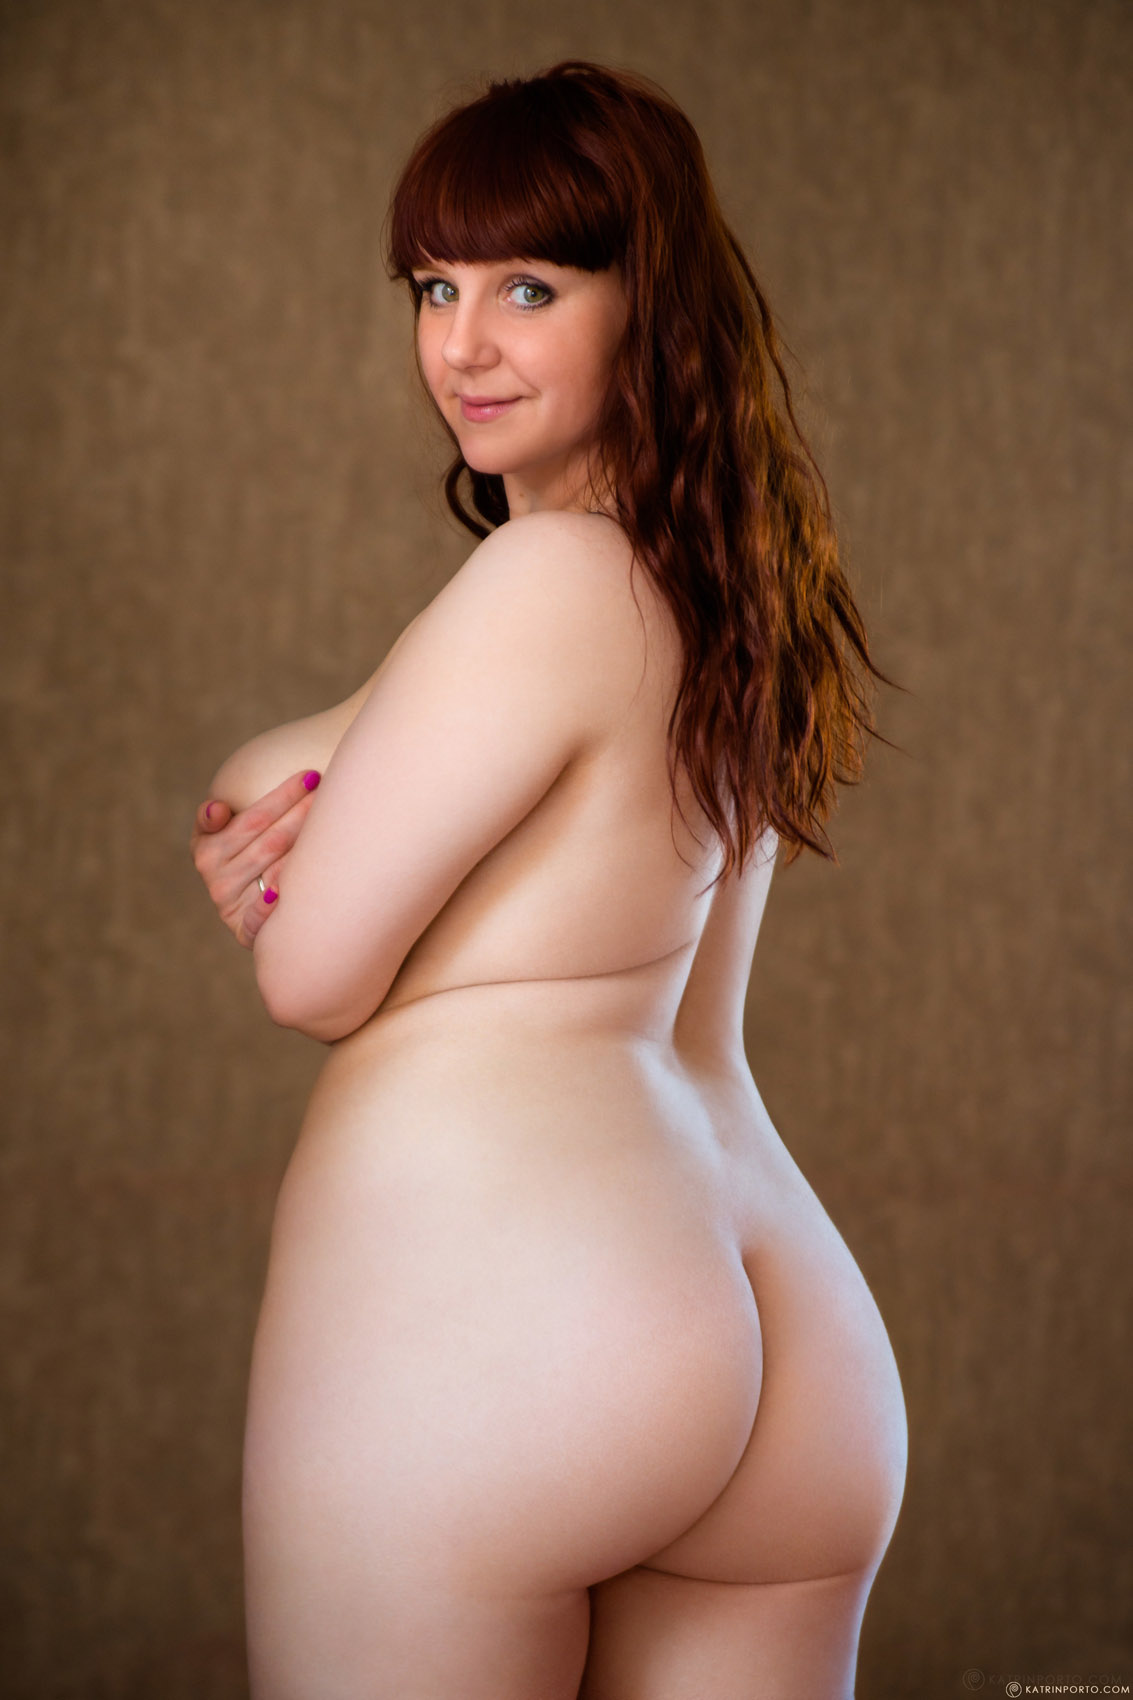 Naked pictures of thick and curvy women